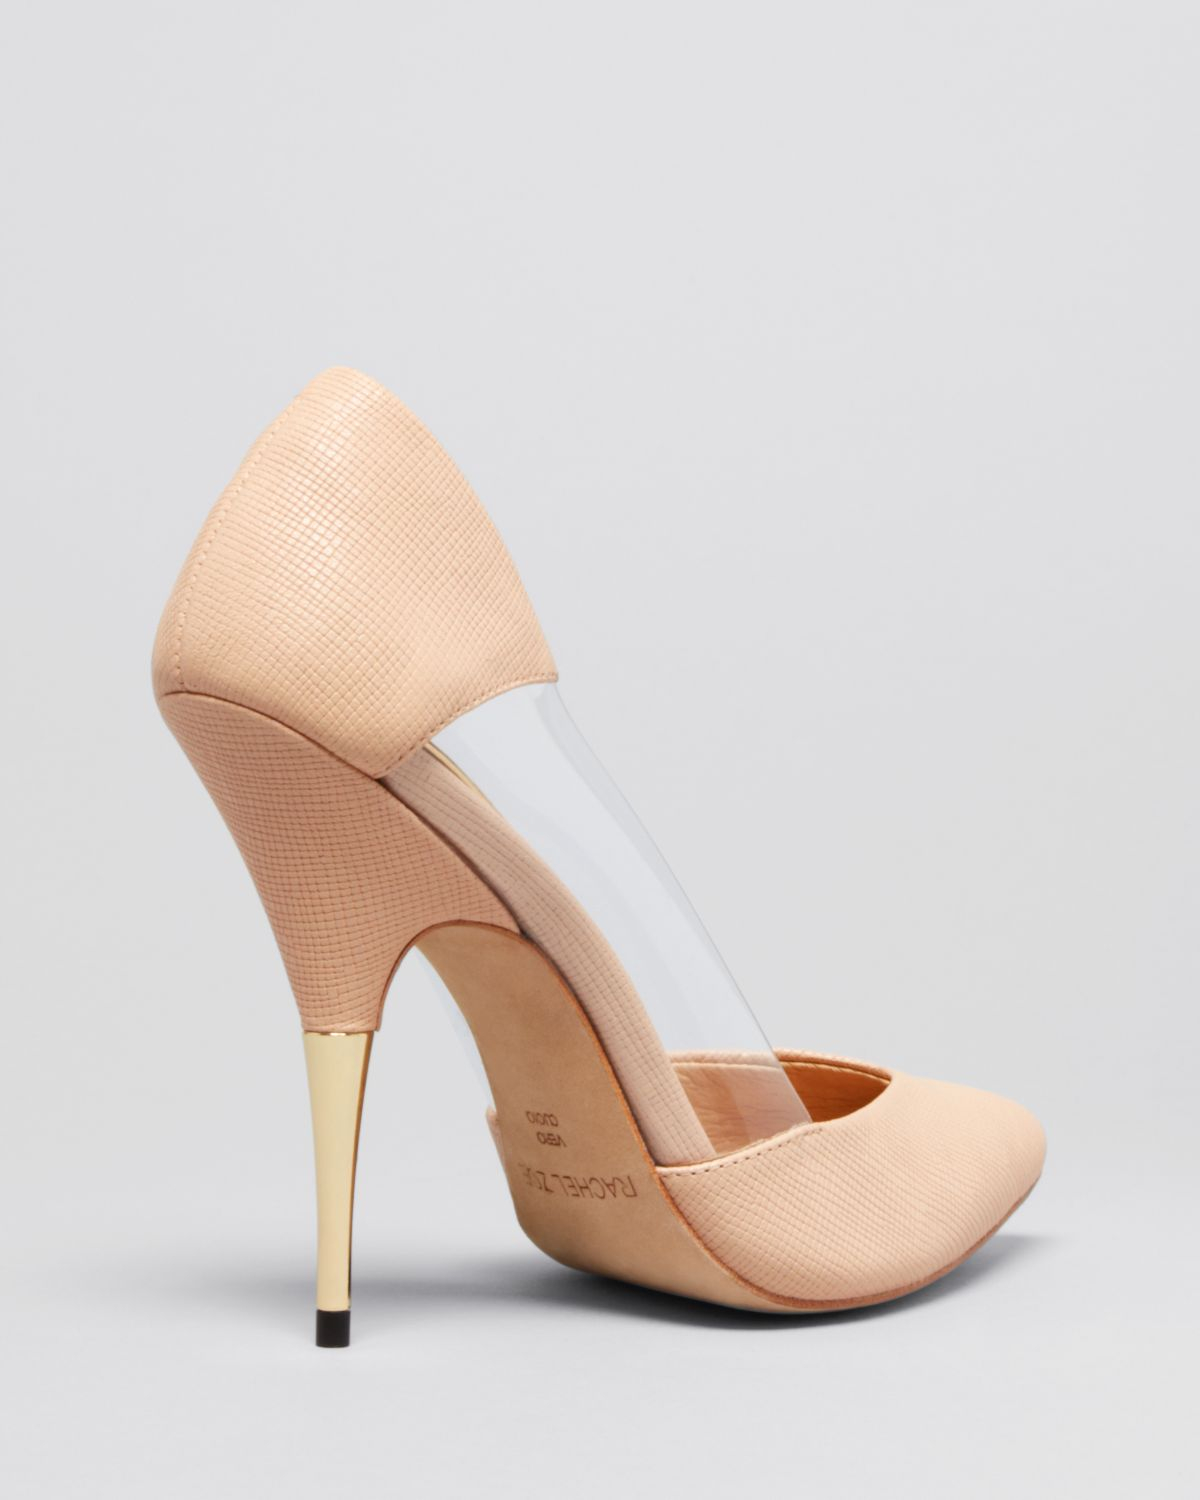 Rachel Zoe Clover Pointed-Toe Pumps cheap price top quality clearance with paypal sale online mCEXHmr5kf